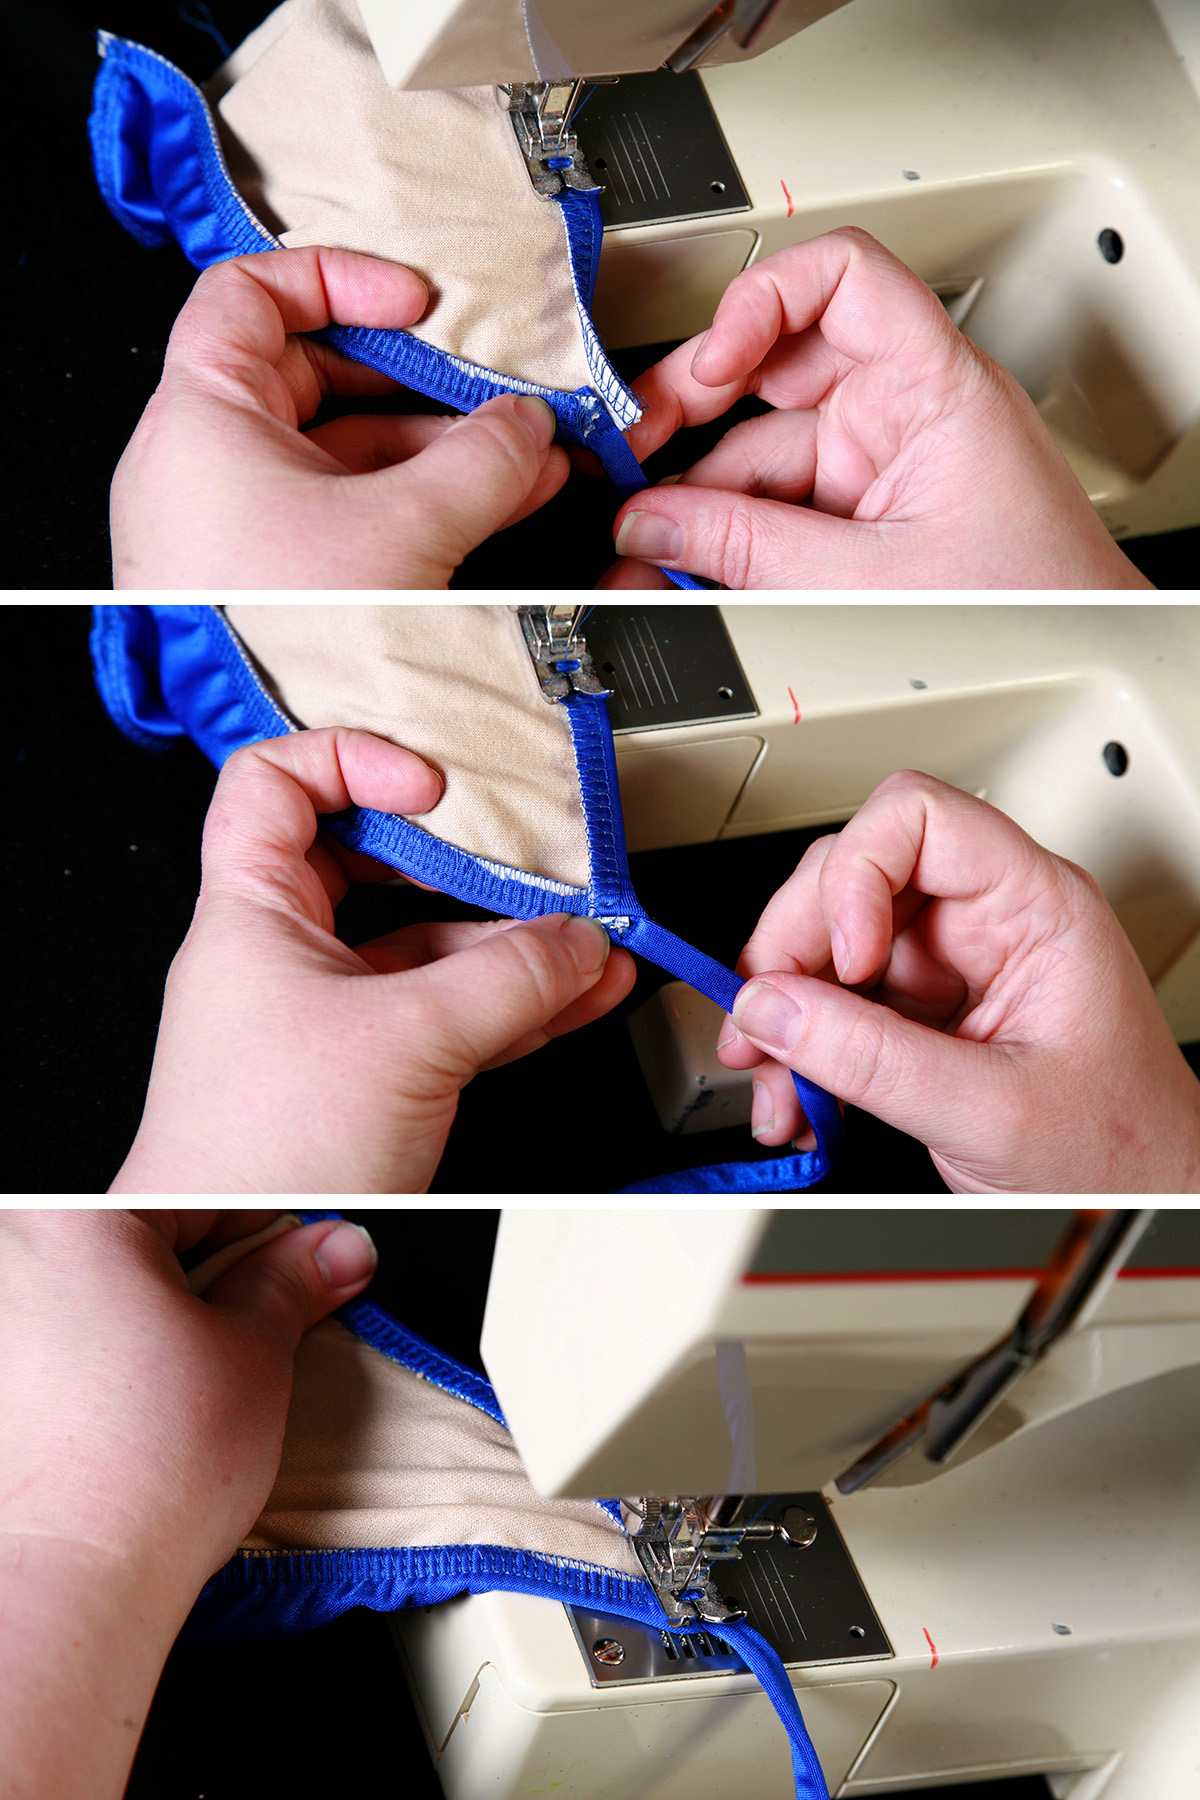 A three part image showing the elastic being folded over and stitched down, as described in the post.